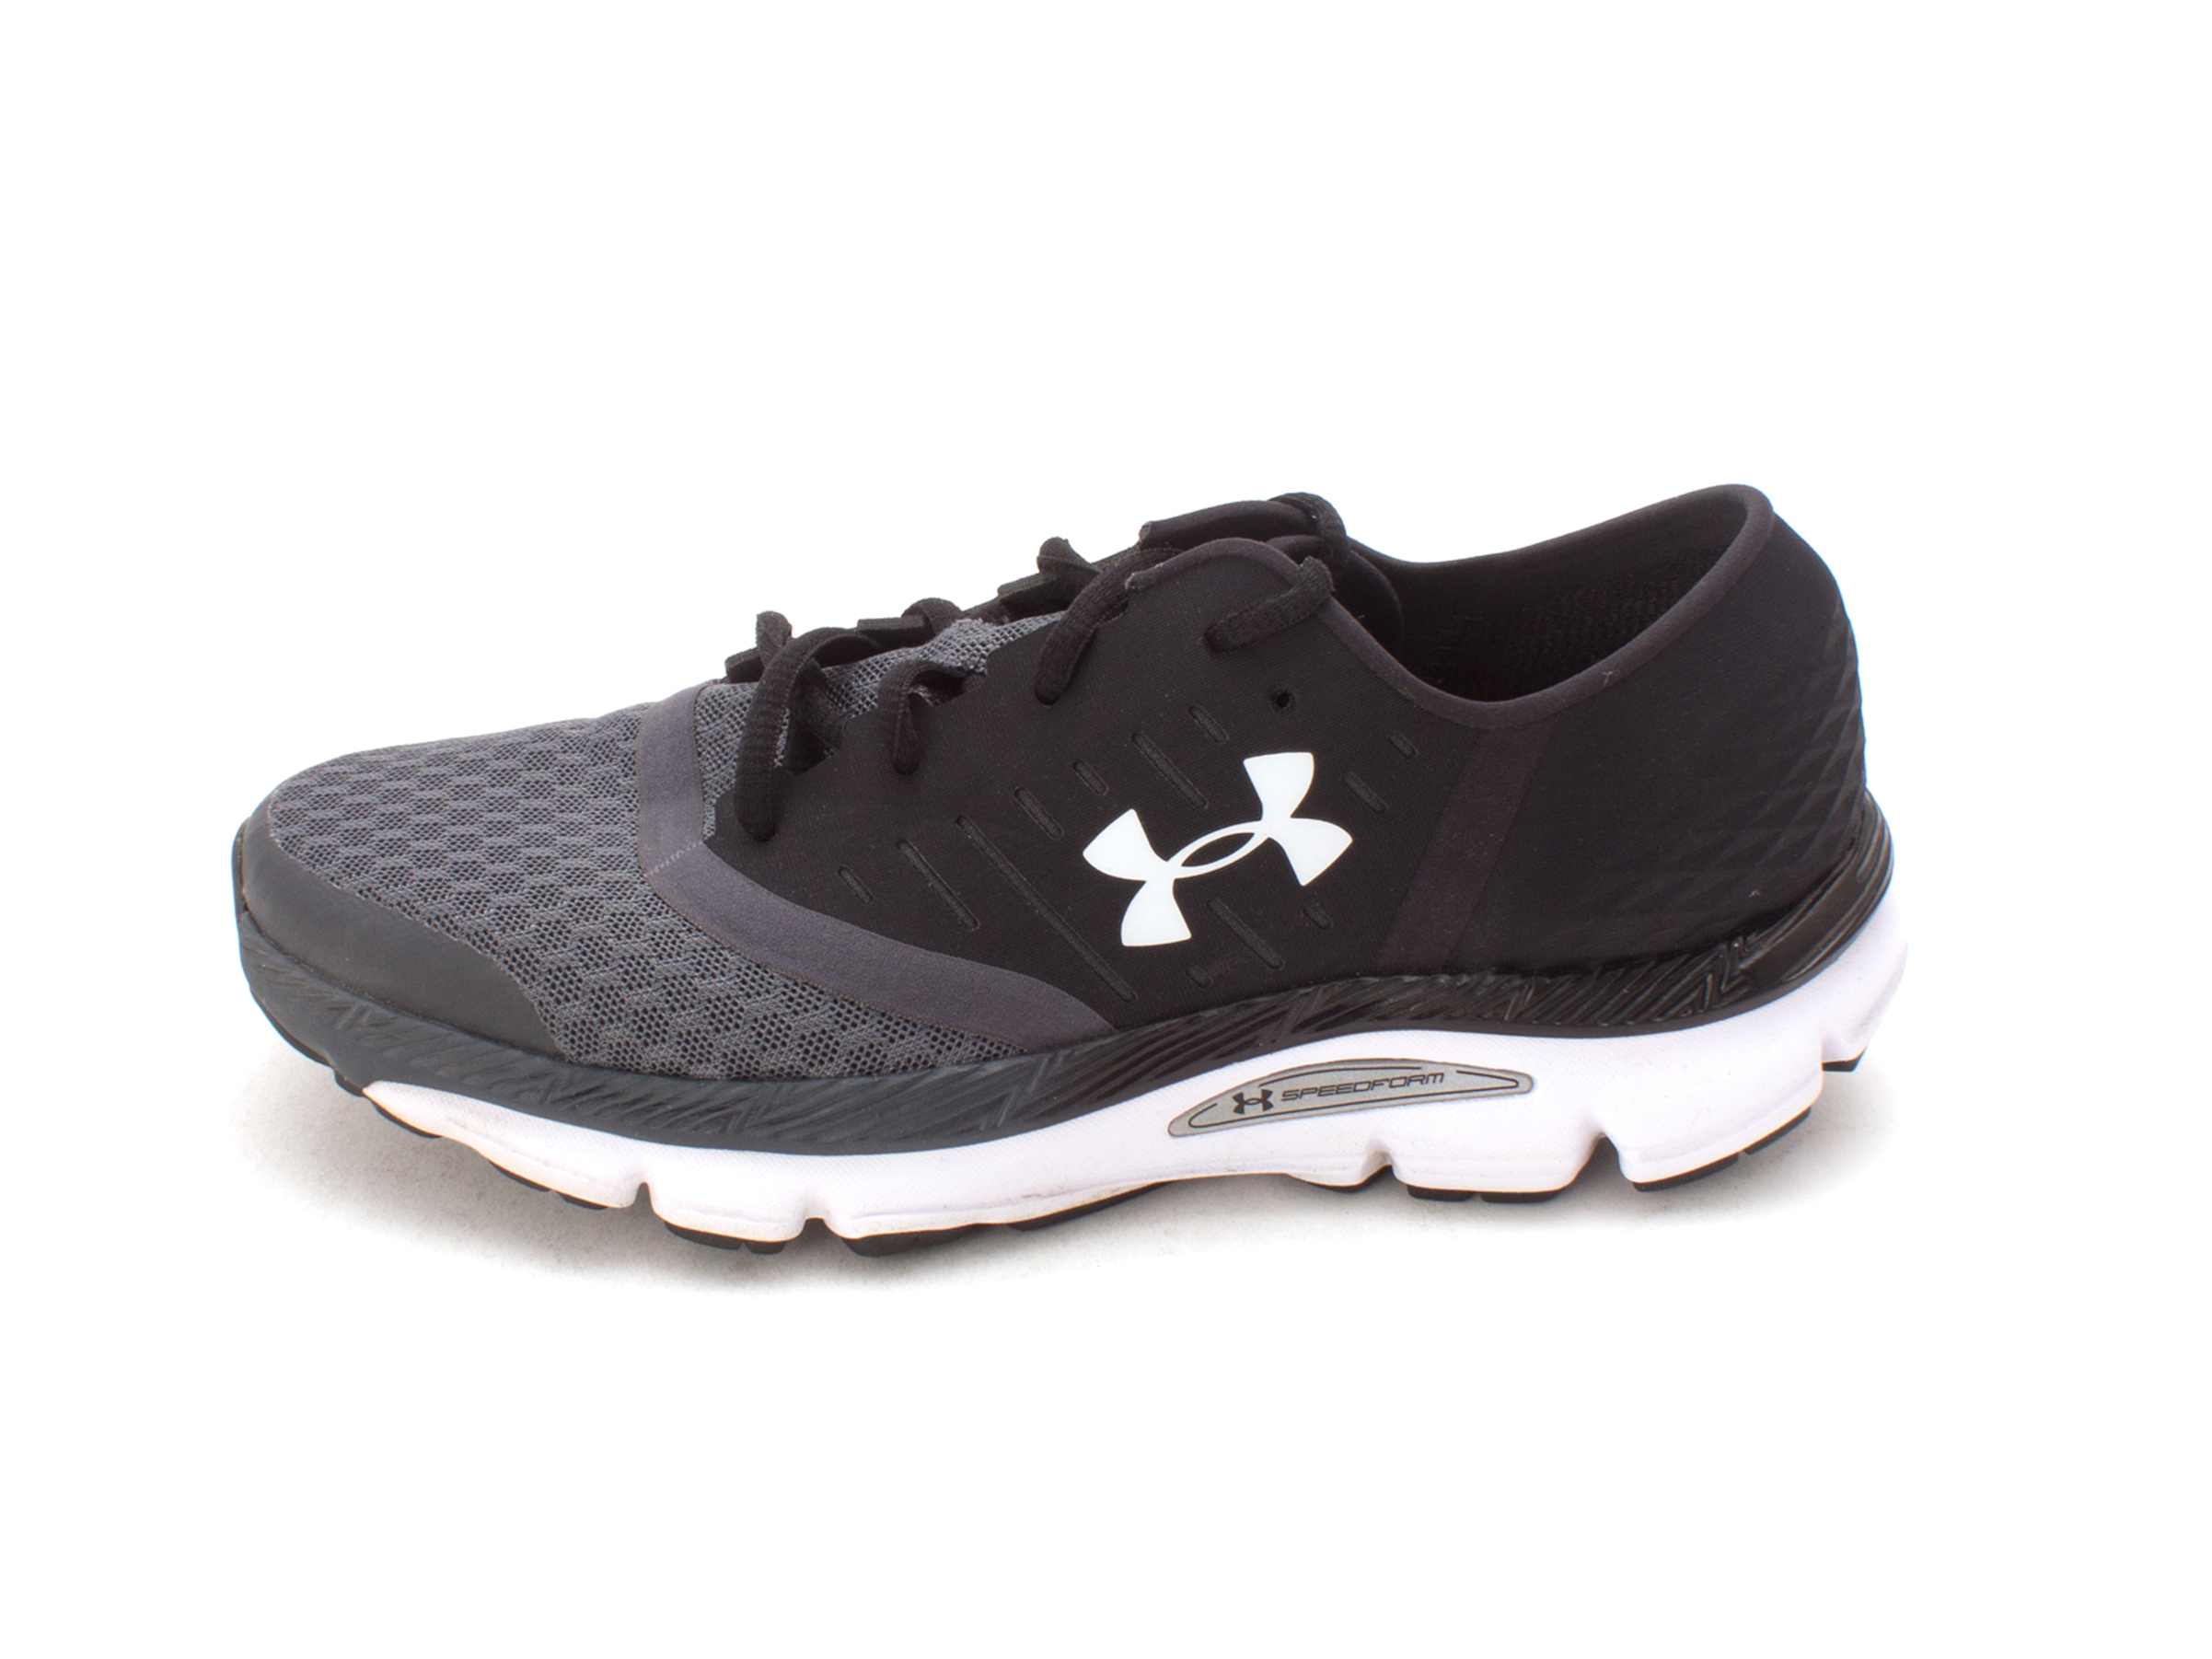 Under Armour Womens Speedform intake Low Top, Black/grey/white combo, Size 7.5